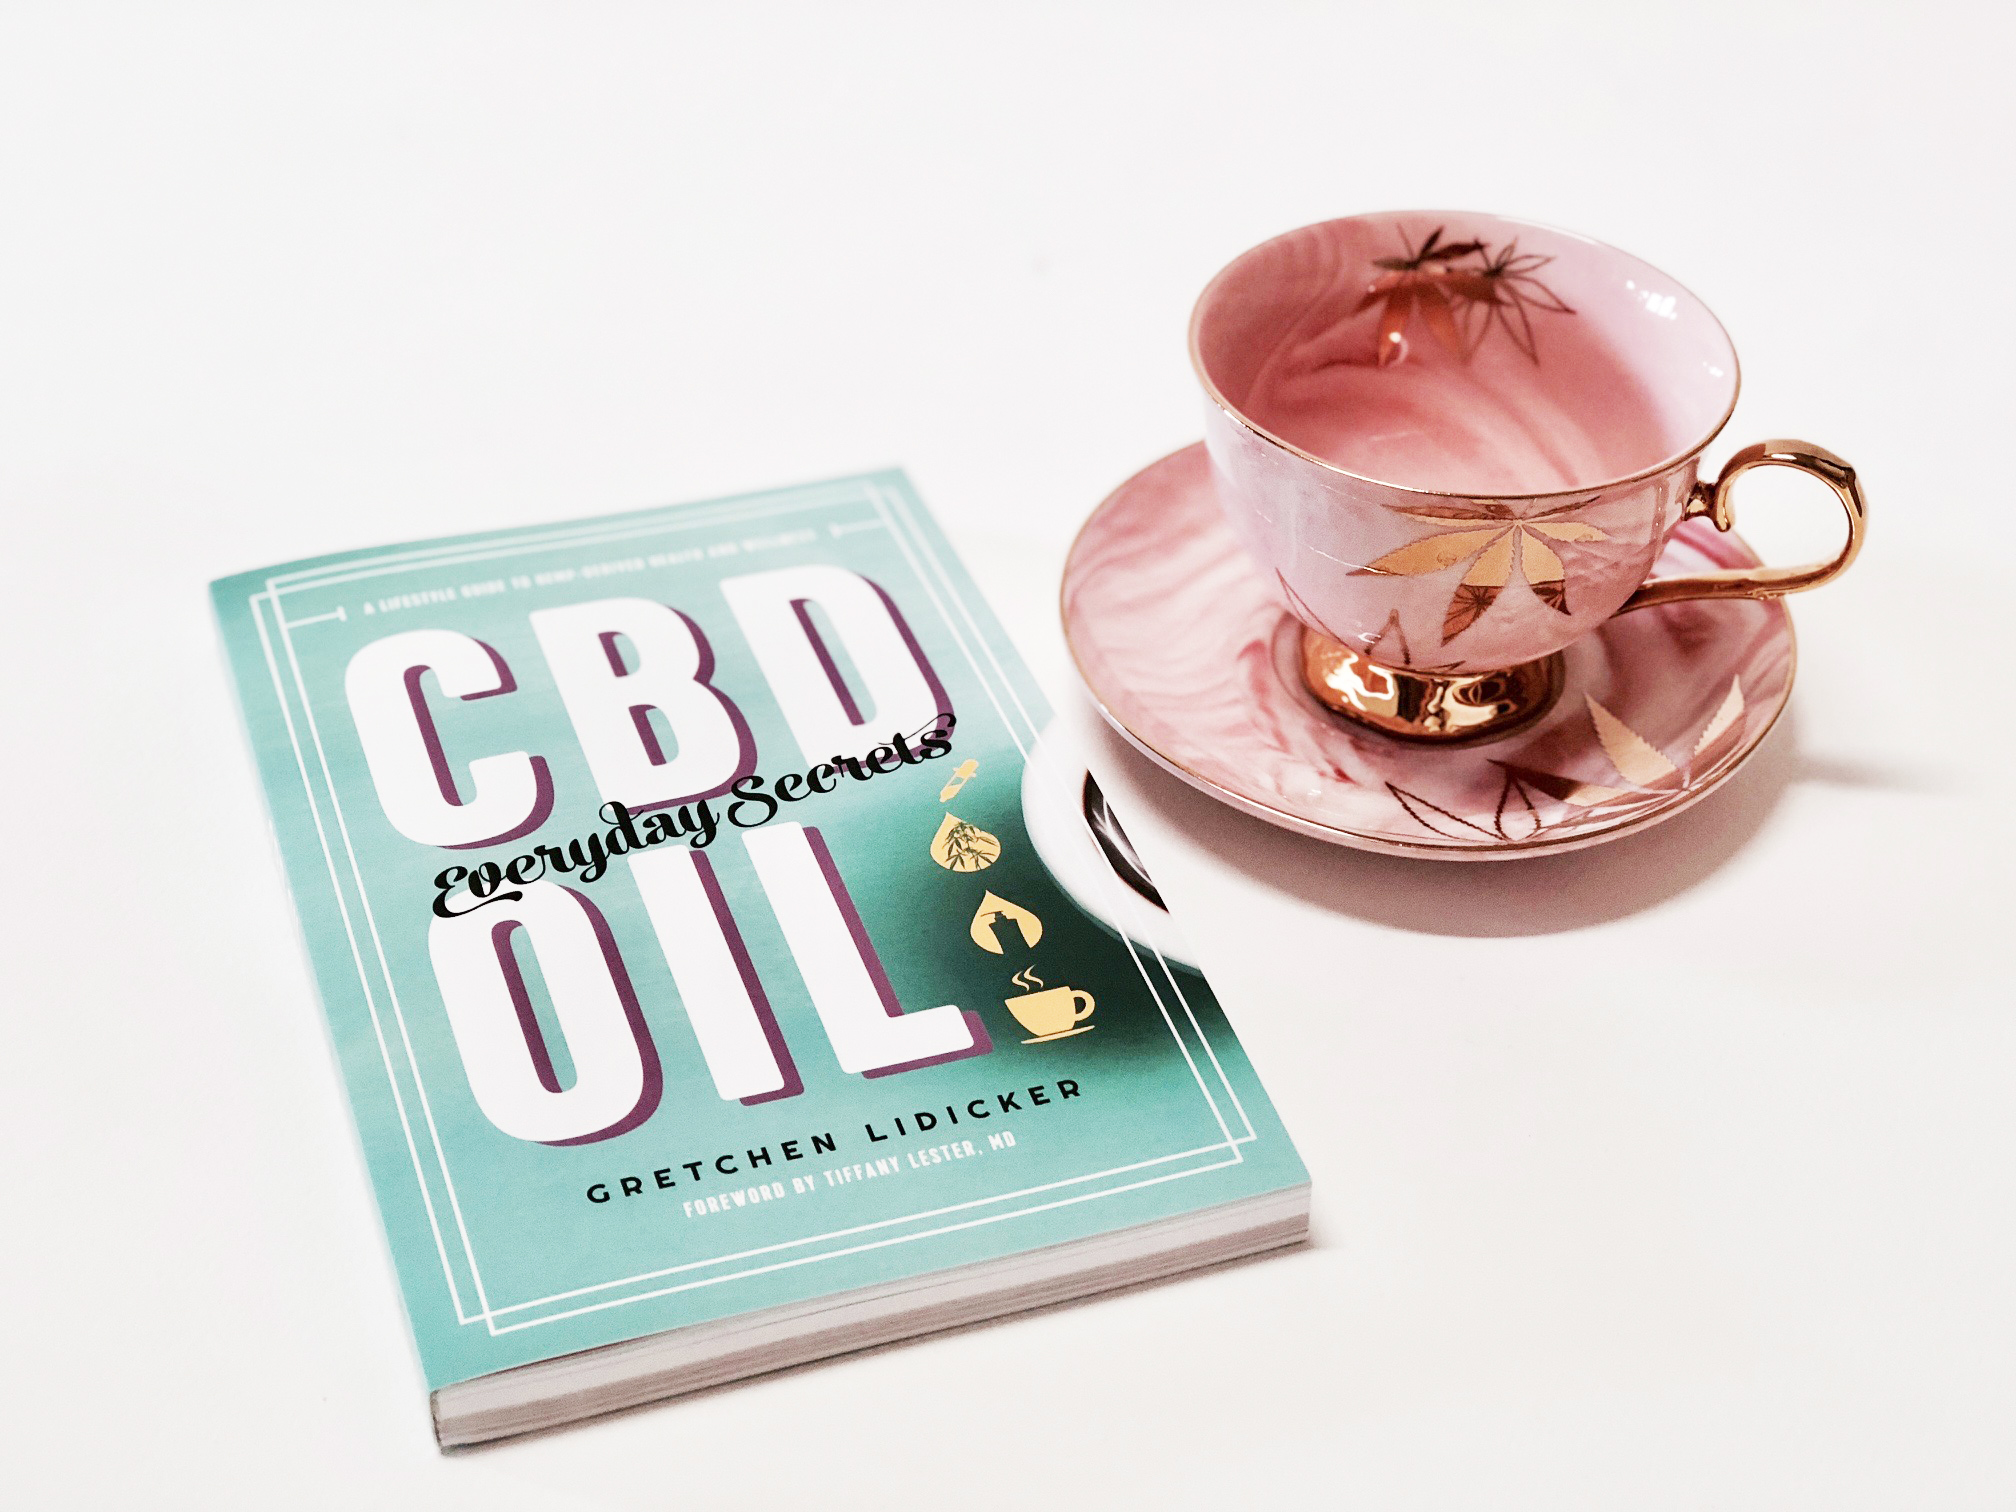 CBD Oil: Everyday Secrets: A Lifestyle Guide to Hemp-Derived Health and Wellness , by Gretchen Lidicker   Countryman Press, 2018. $14.95